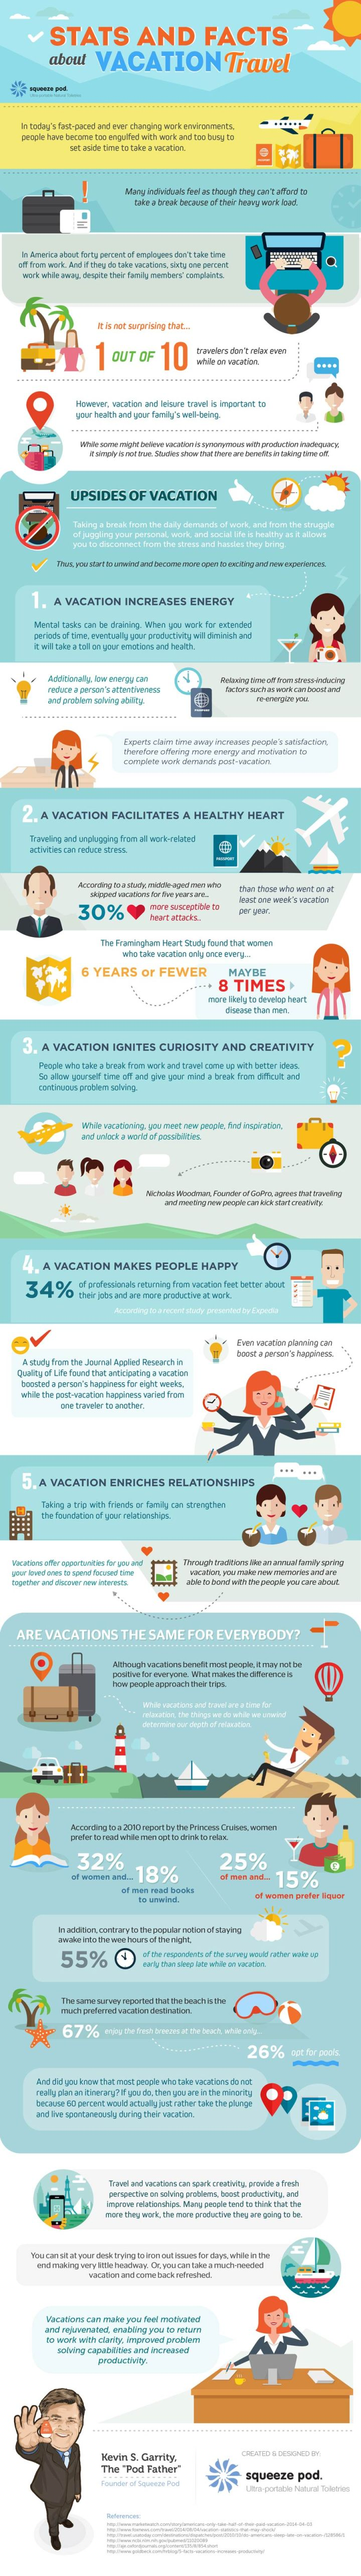 Stats-and-Facts-about-Vacation-Travel